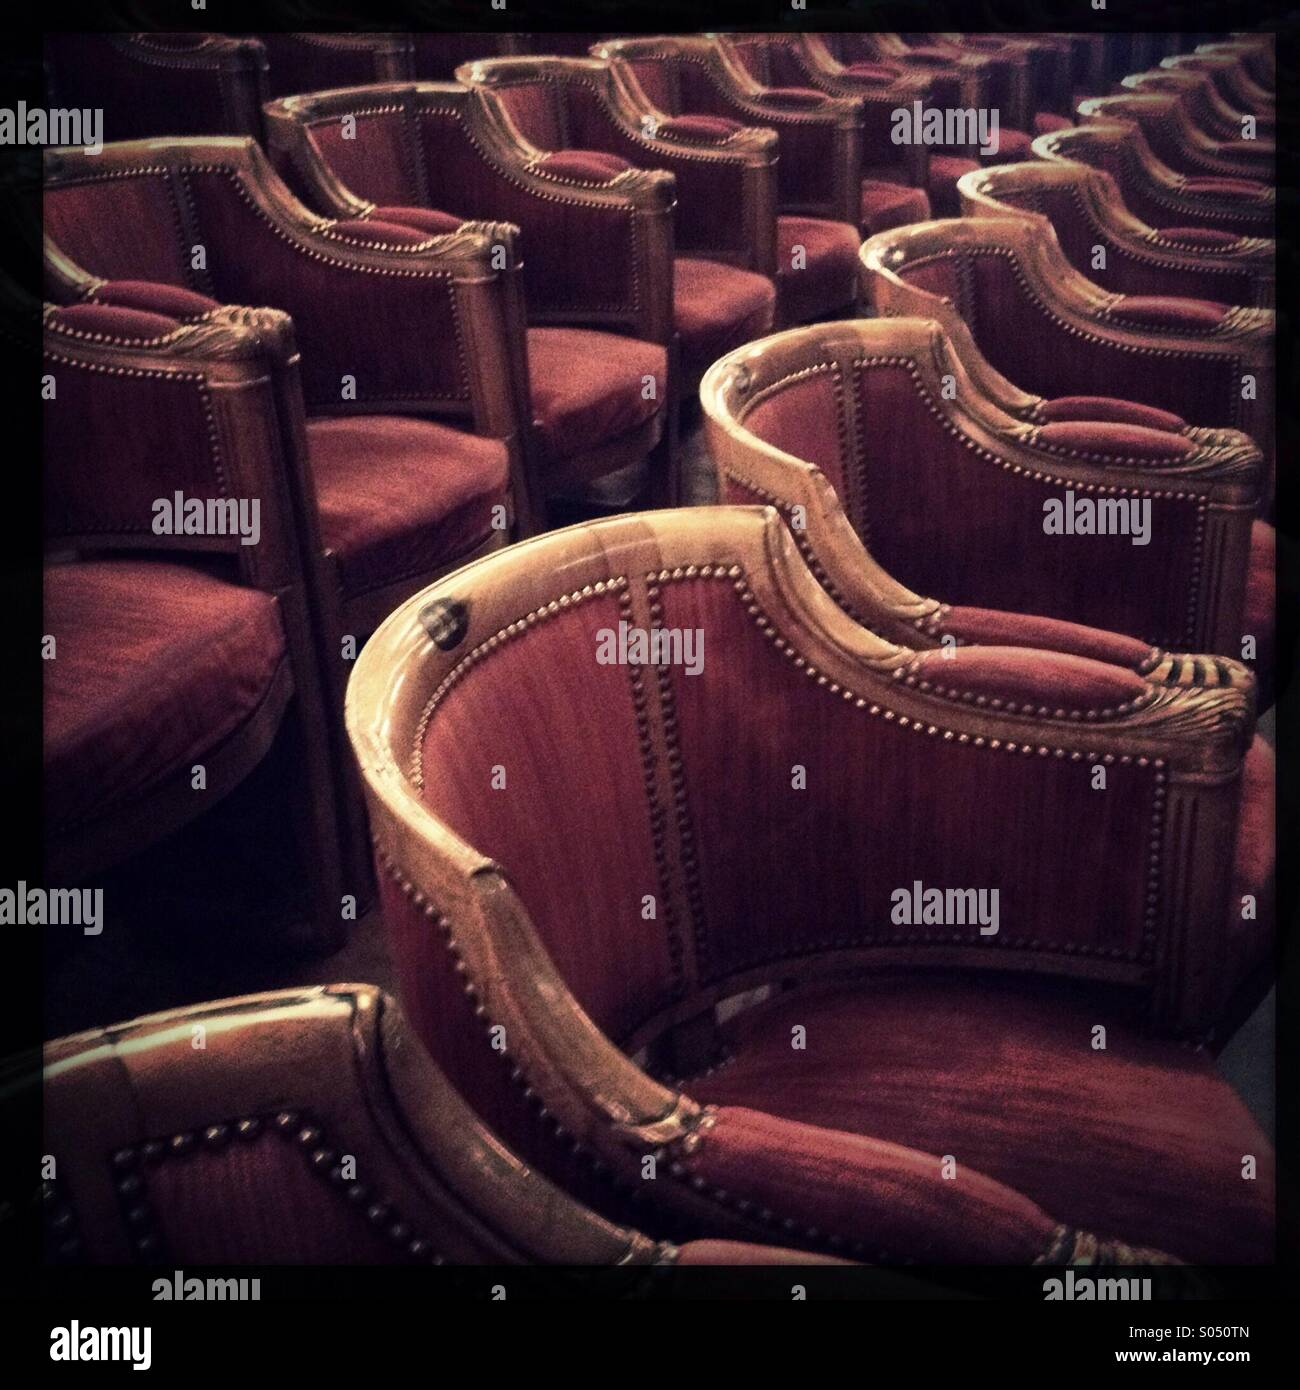 Theater chairs - Stock Image